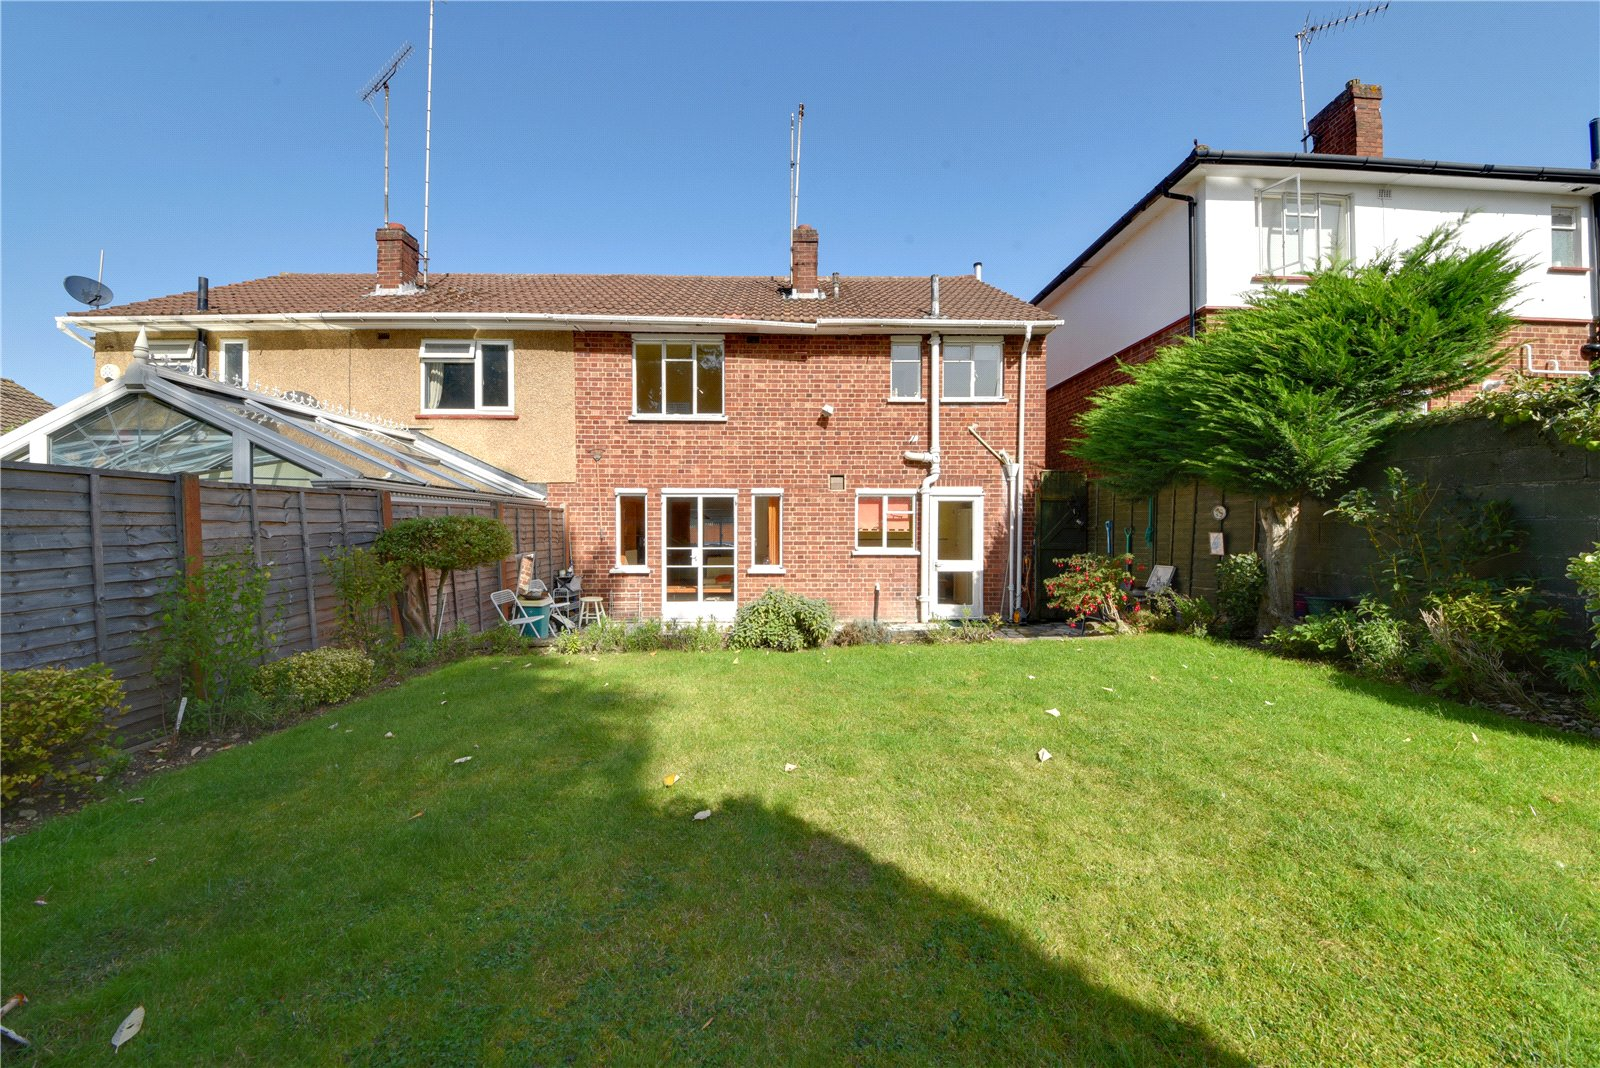 3 bed house for sale in West Finchley, N3 1PB  - Property Image 6